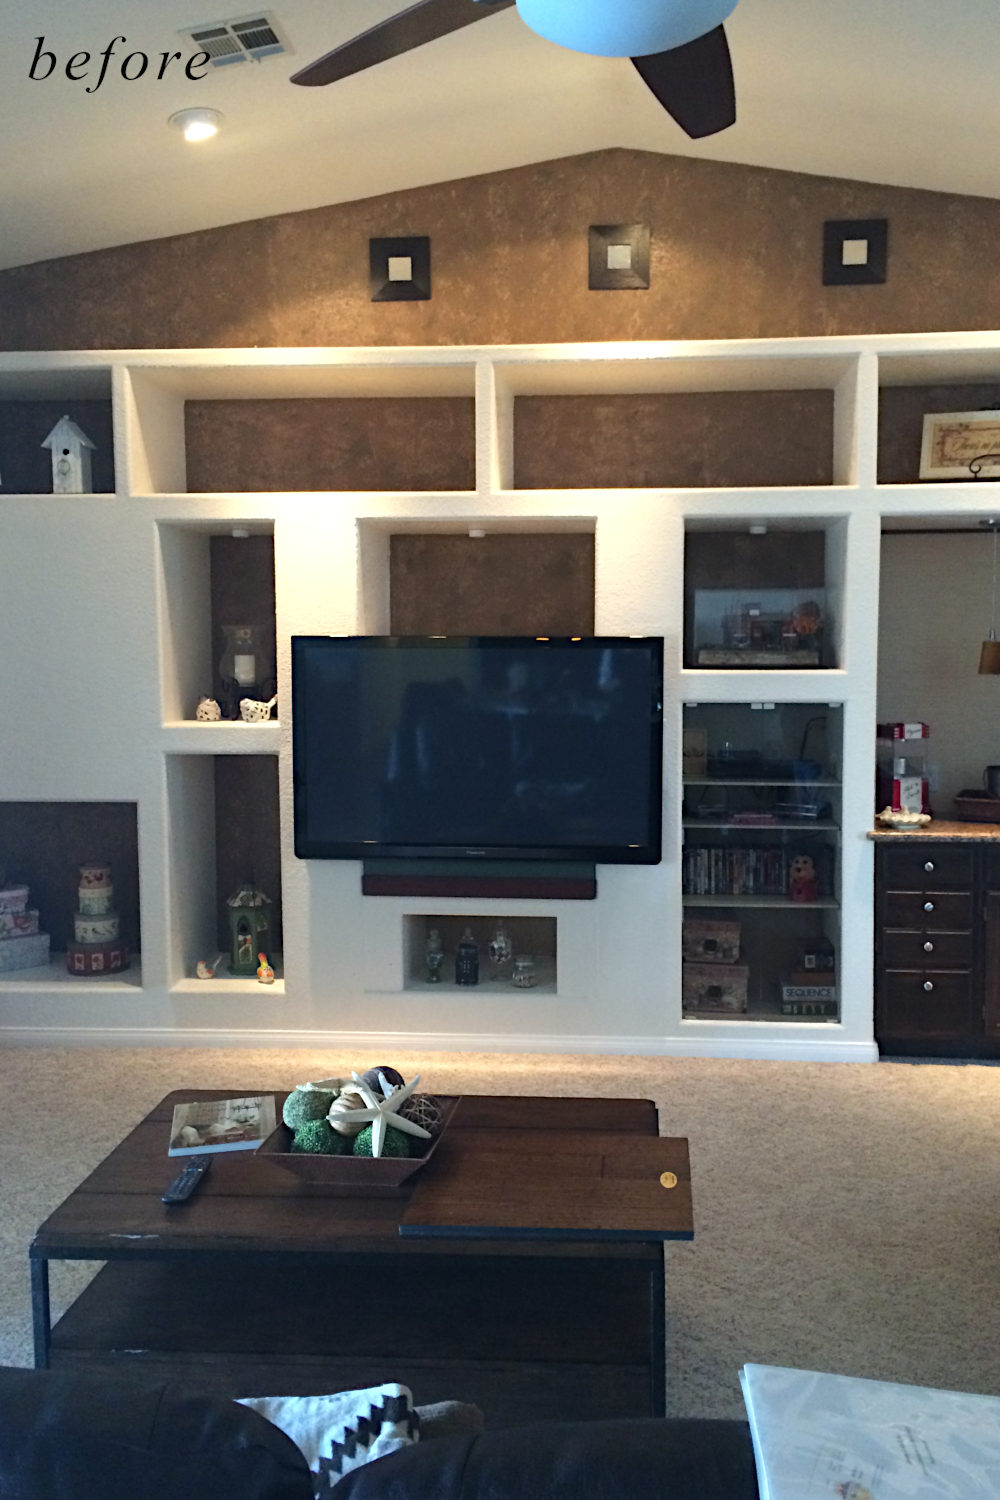 Before remodel image: basic and dated home entertainment wall in family room.